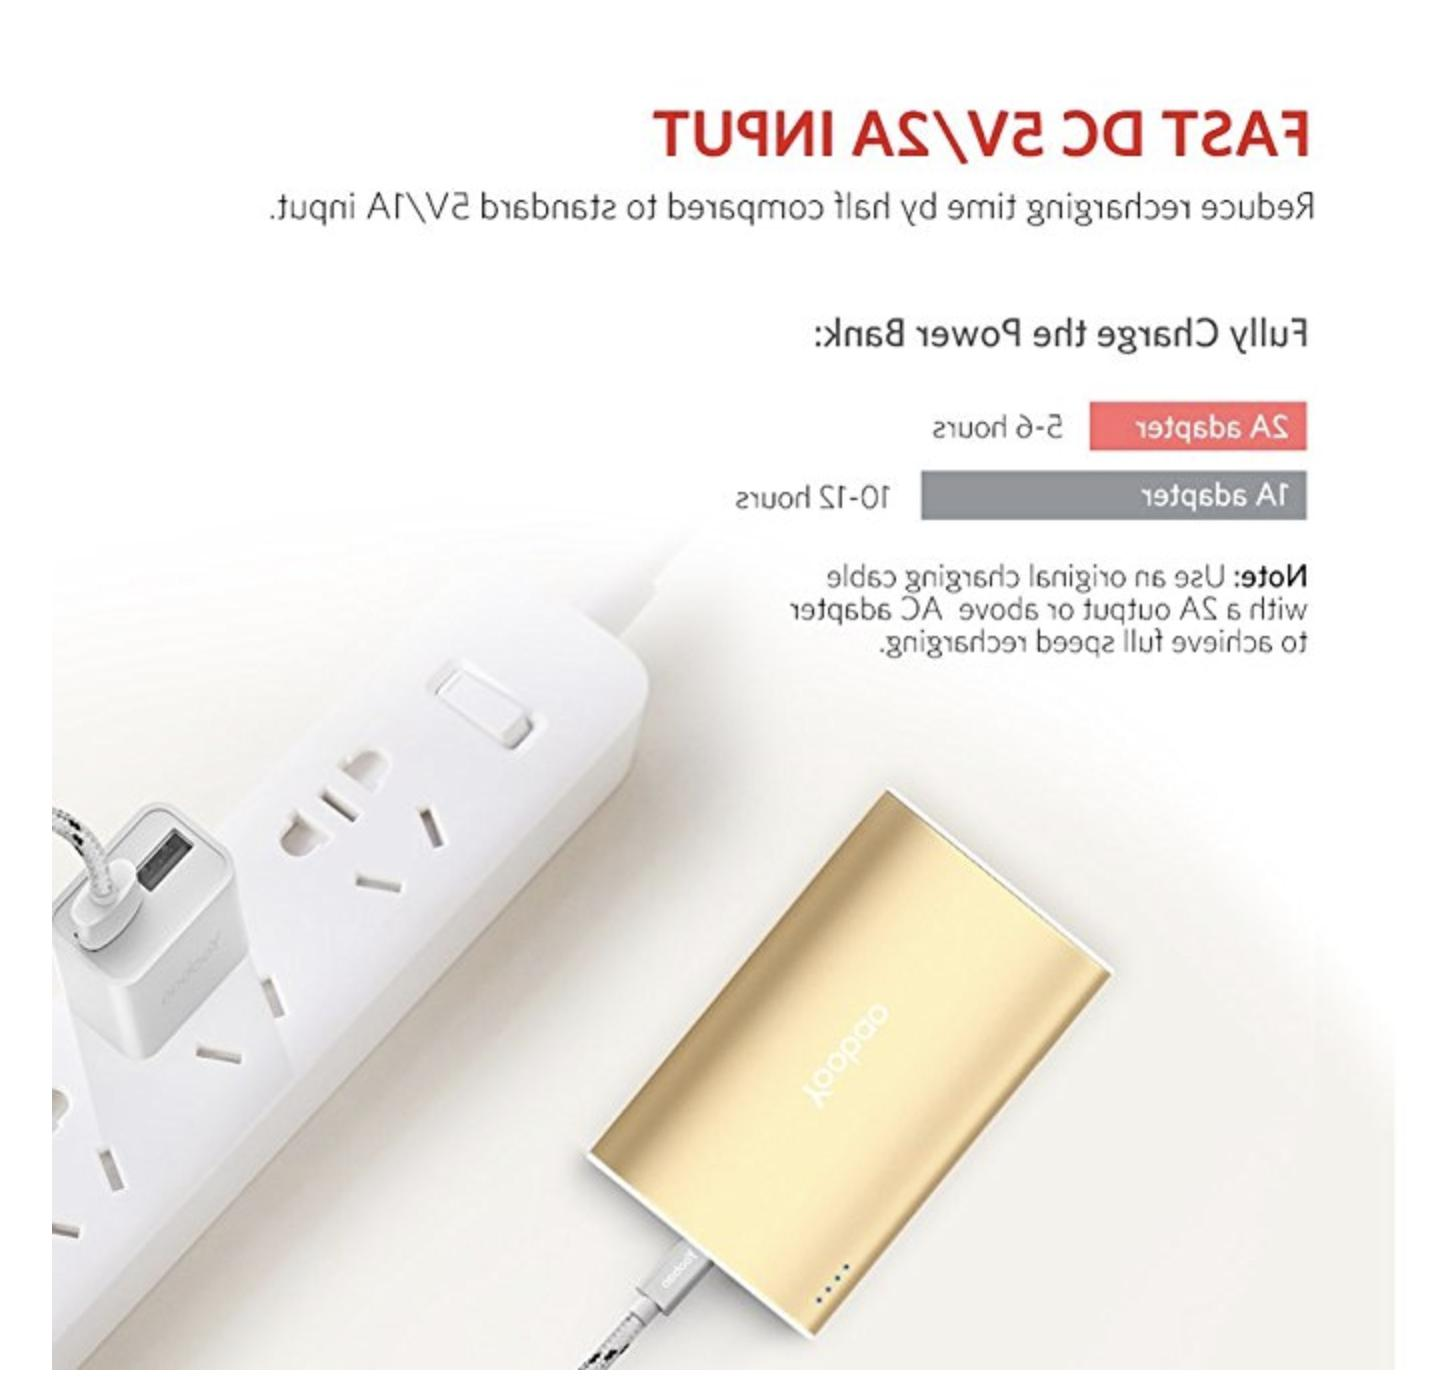 Portable iPhone Charger, Yoobao Power External Charger Power